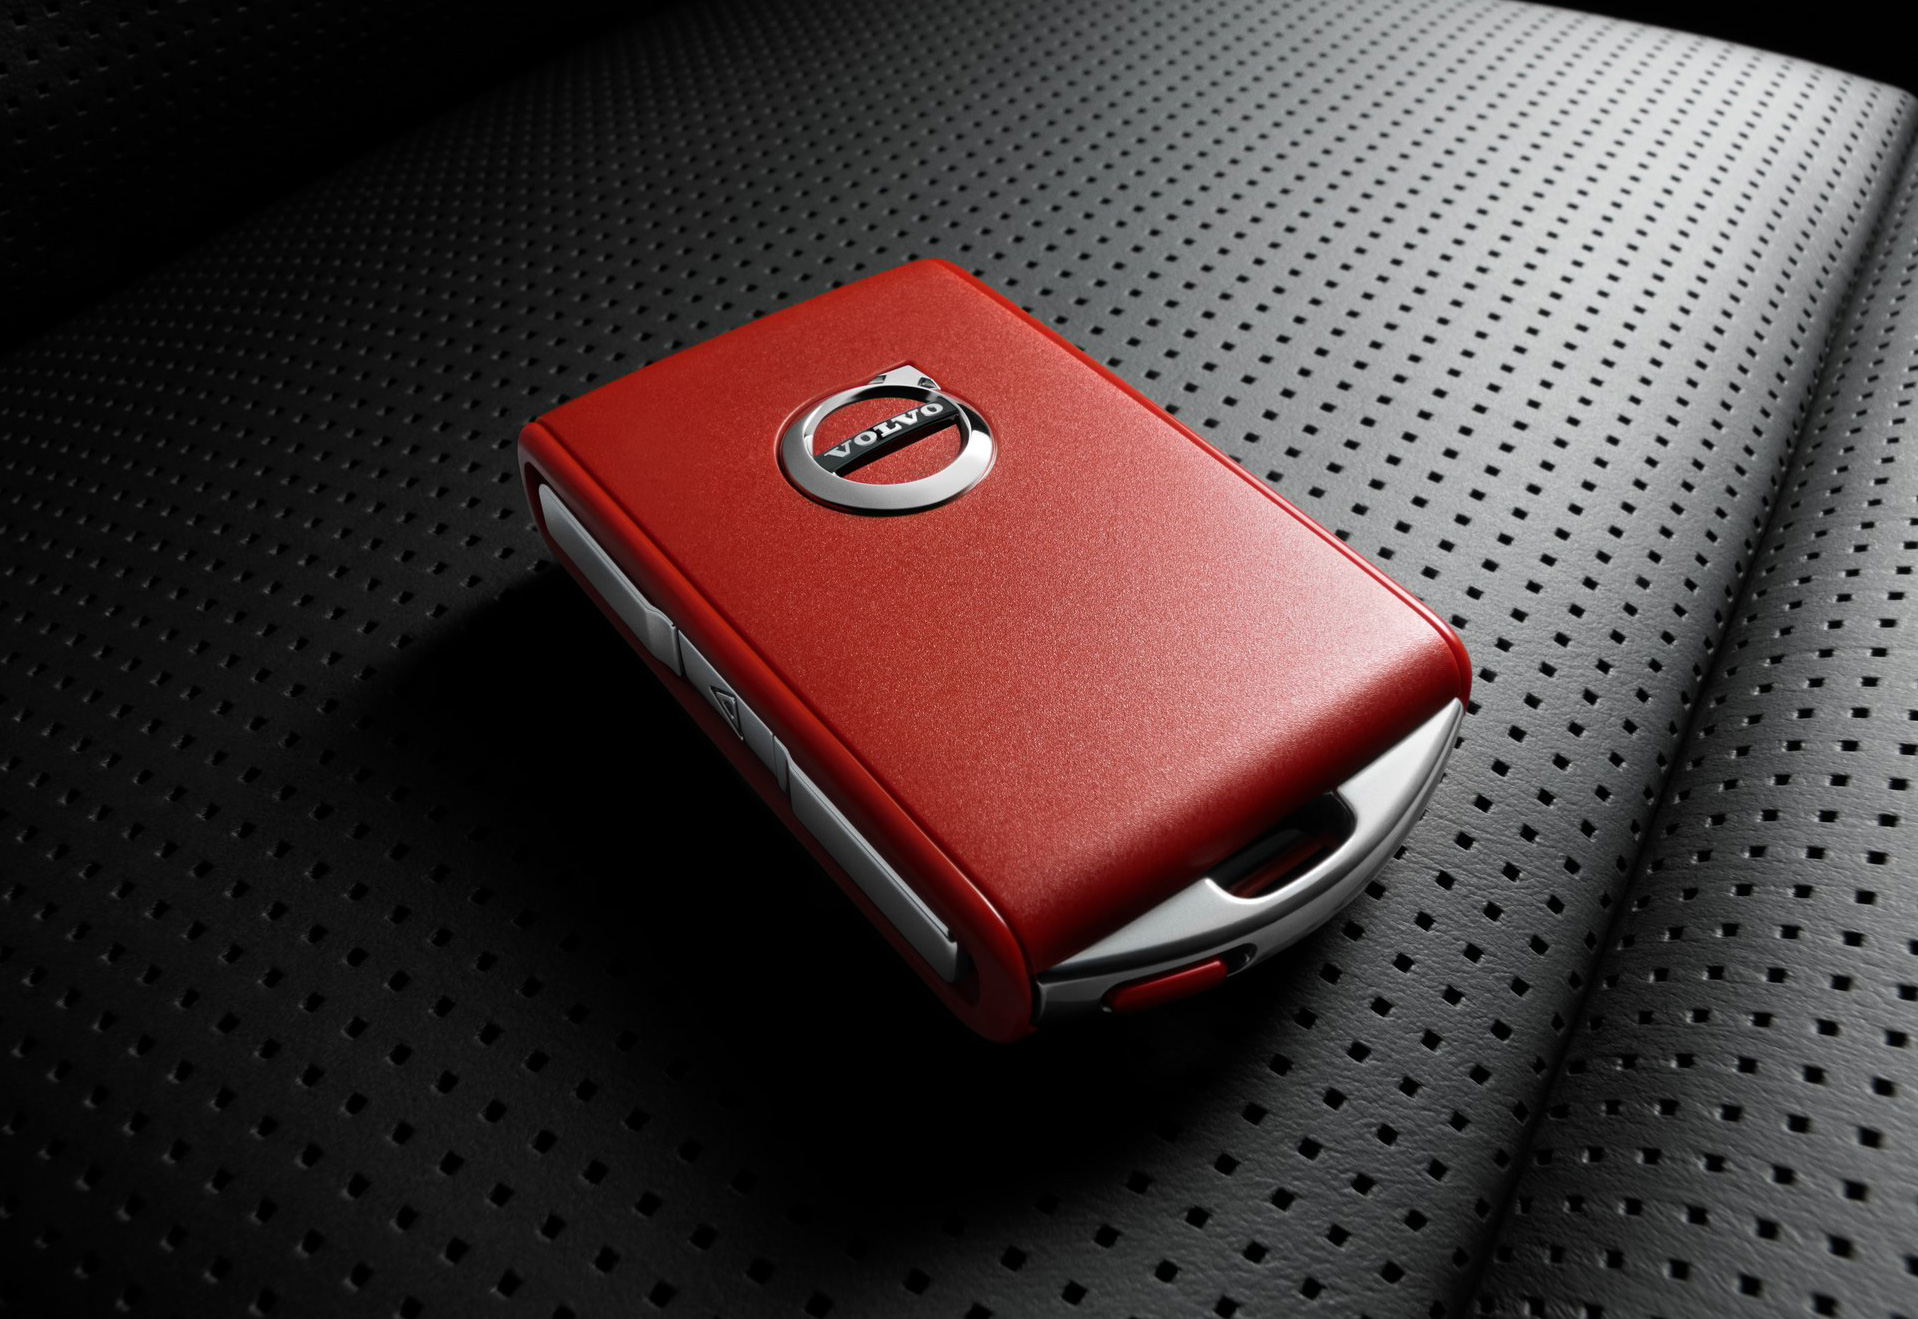 201883_Volvo_Cars_new_Red_Key_means_your_car_is_always_in_safe_hands.jpg